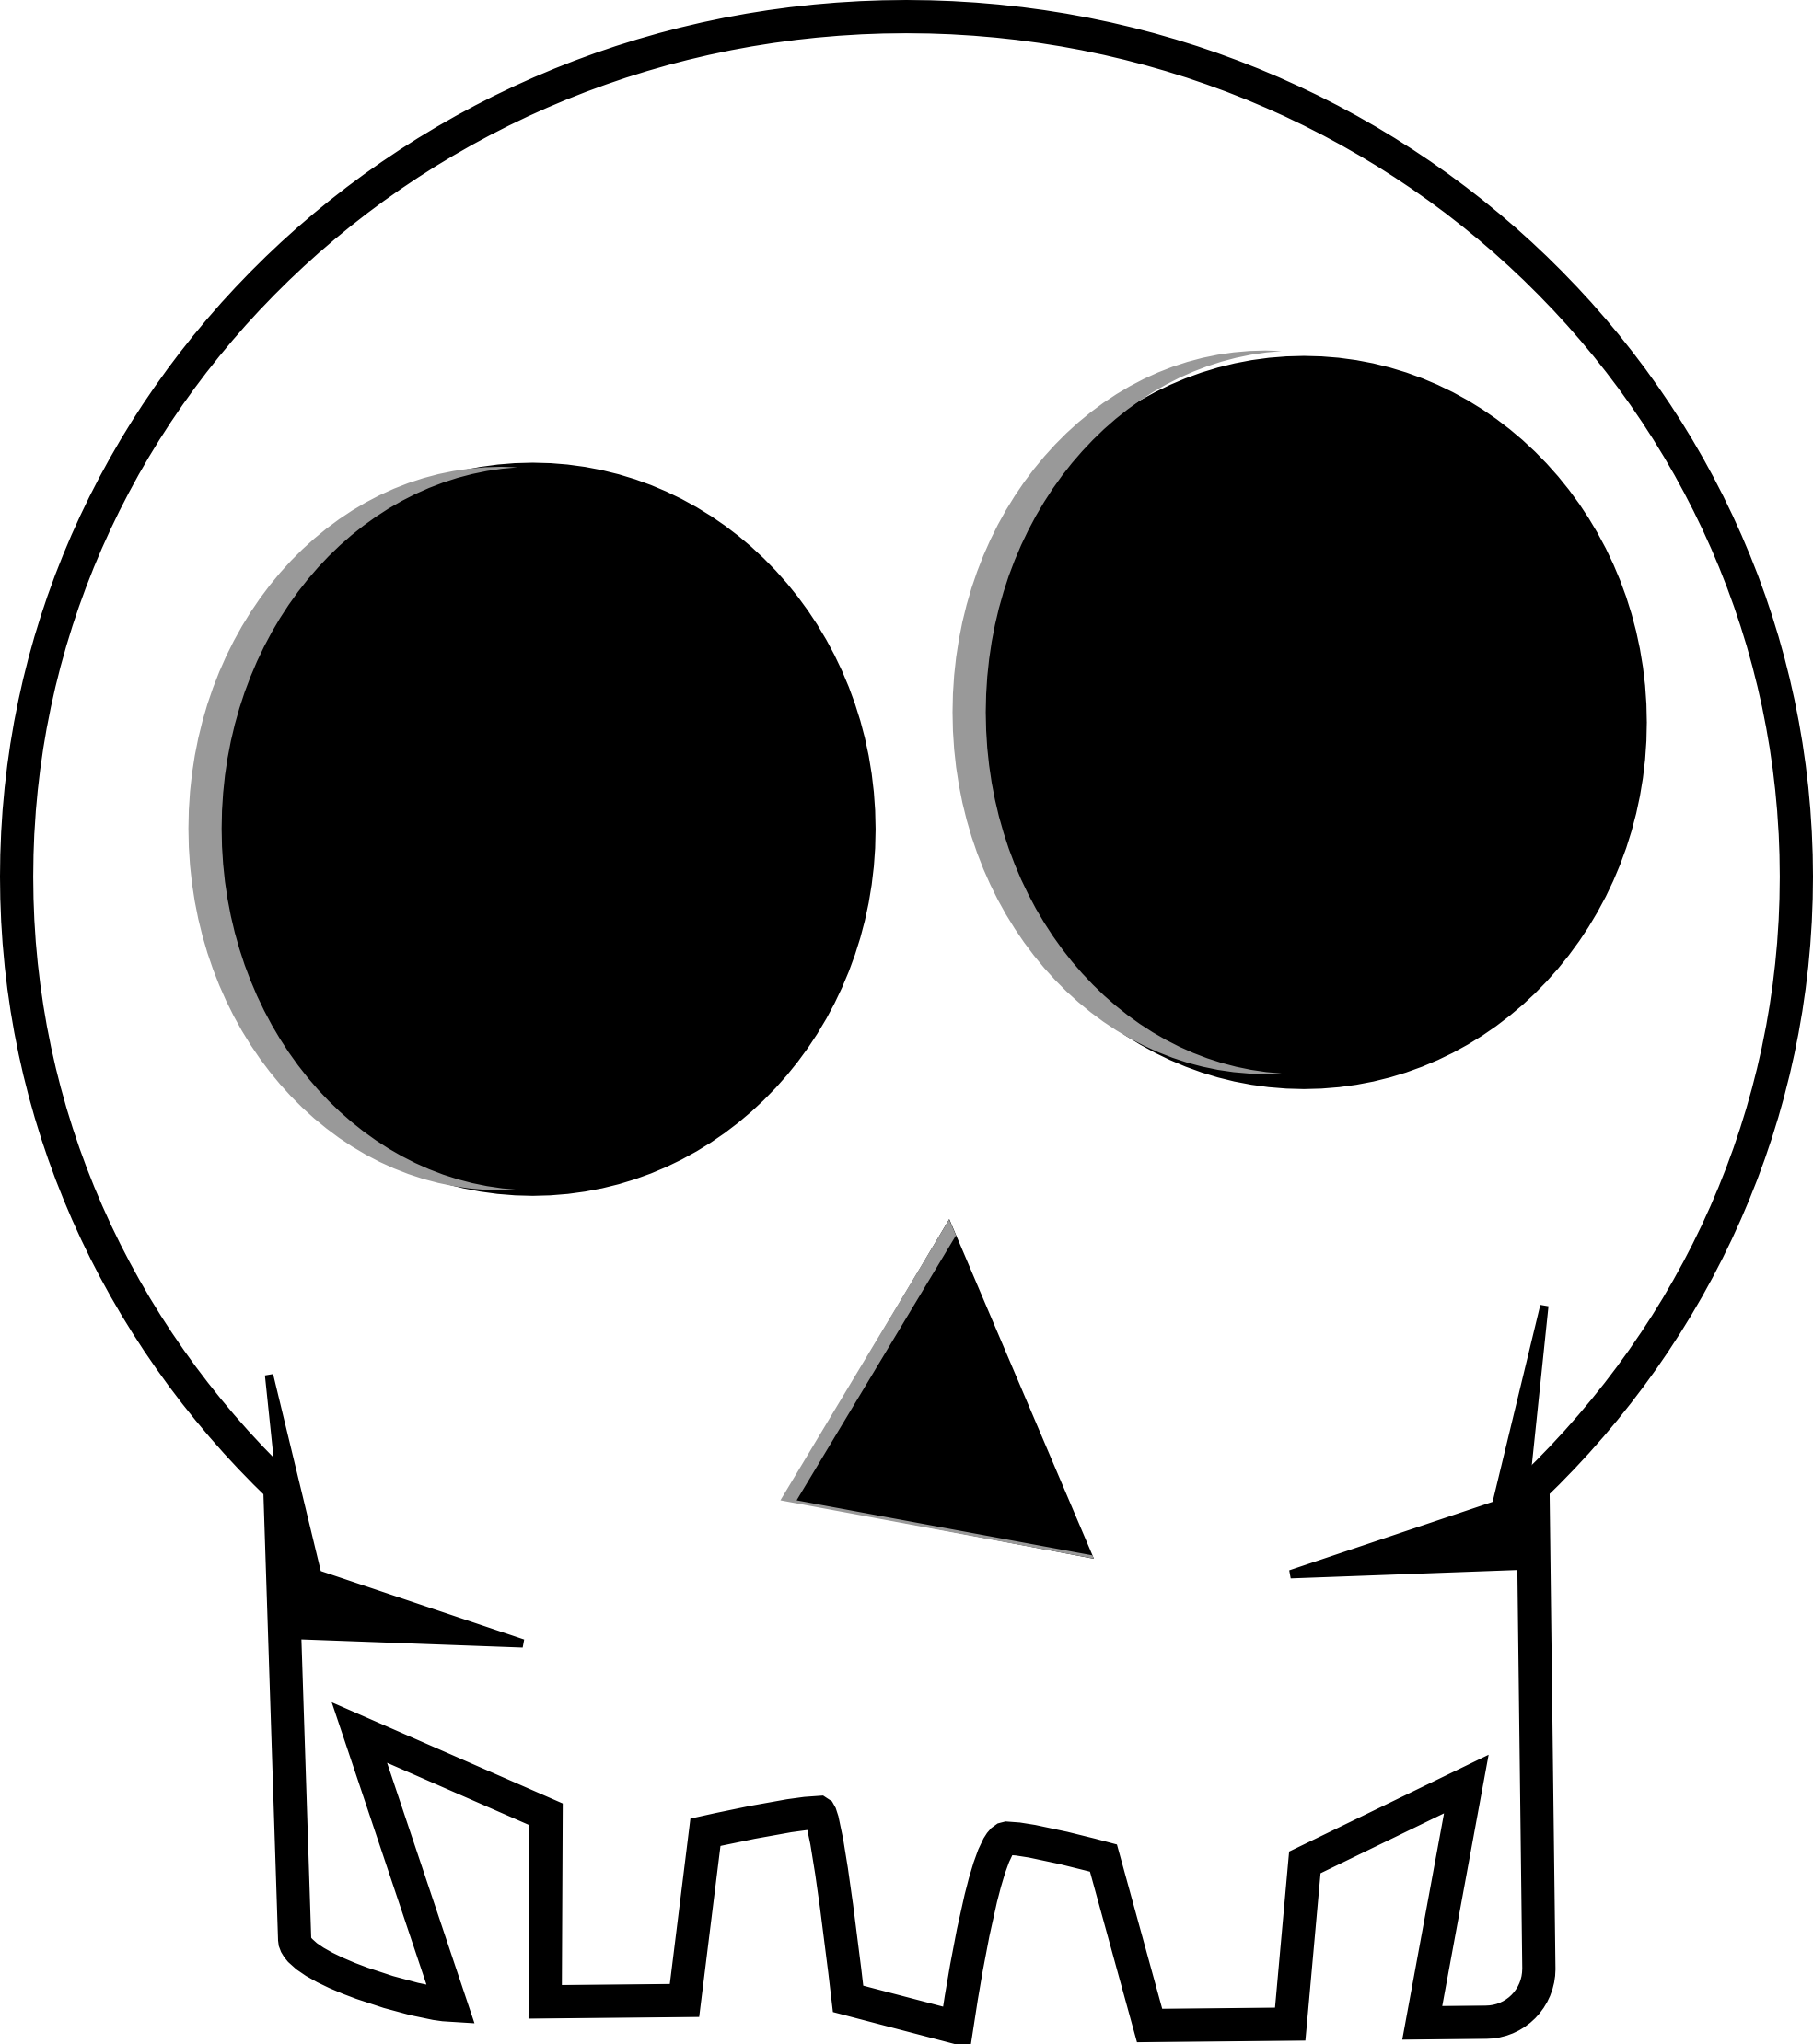 Skulls cartoon clipart images gallery for free download.